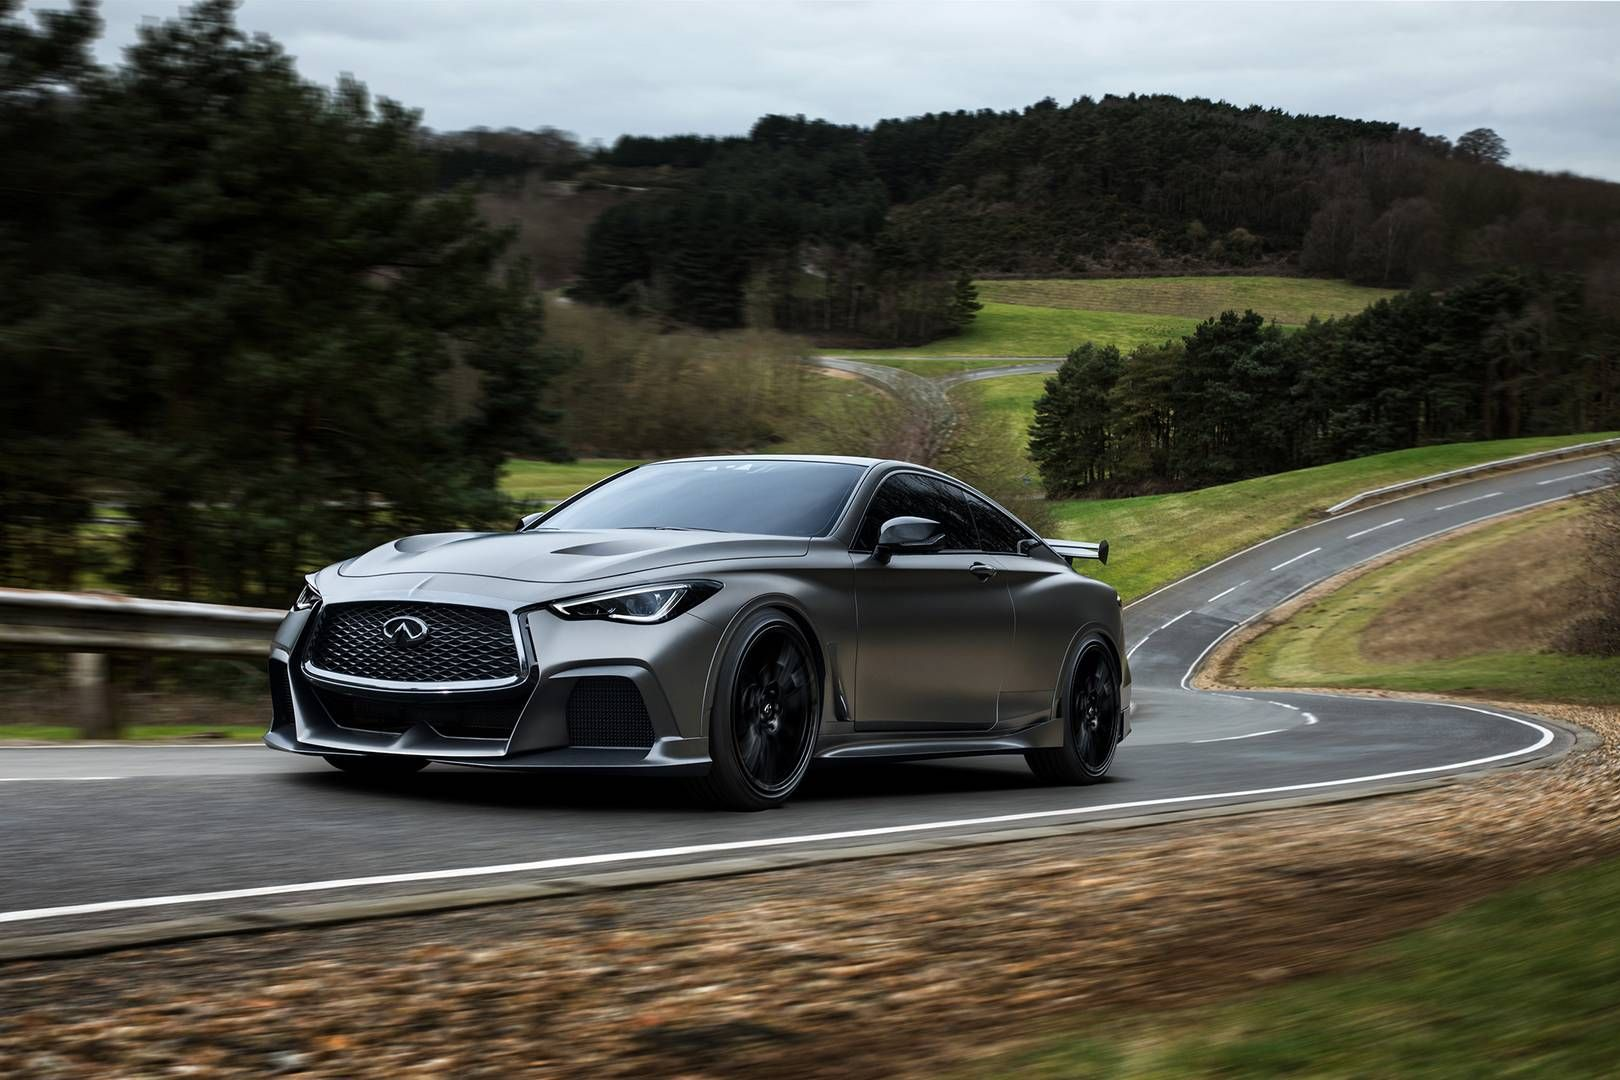 Official Infiniti Project Black S With F1 Ers Tech Gtspirit